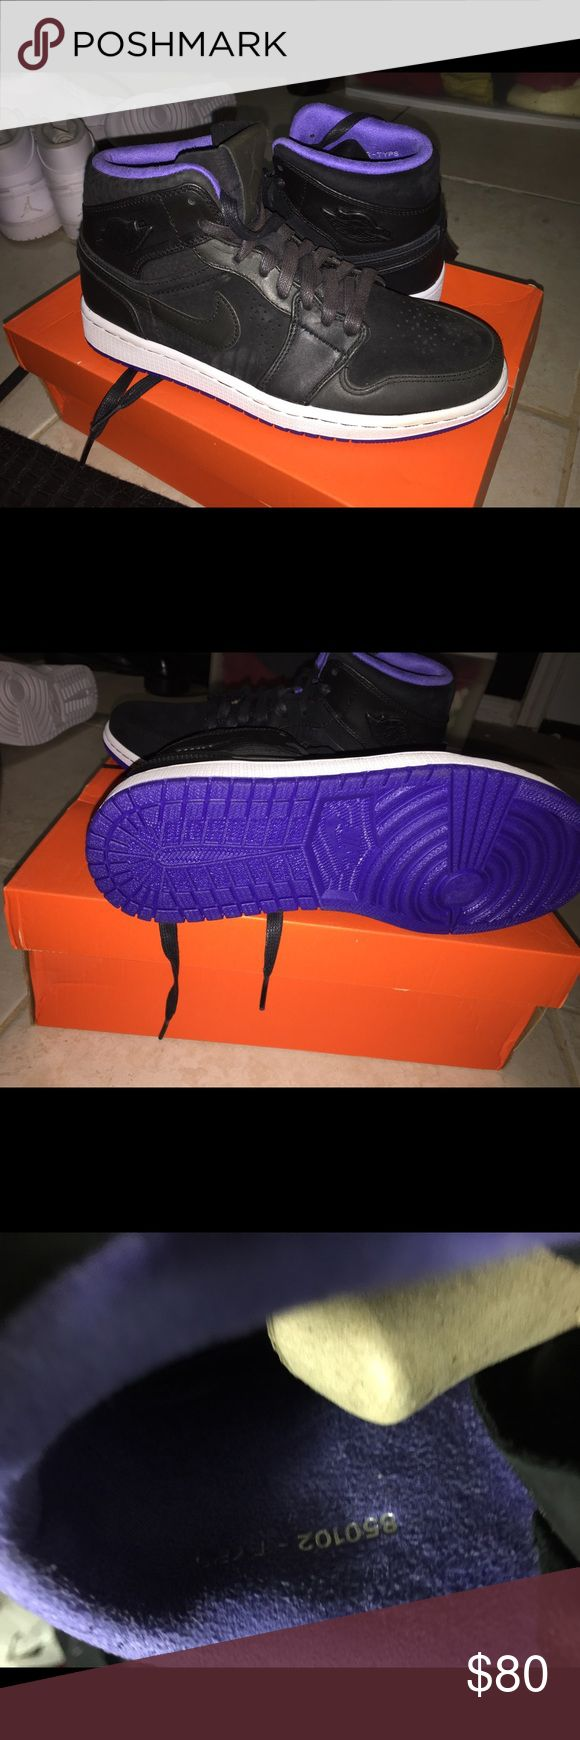 Air Jordan 1 black/purple 80$ brand new with a box Air Jordan 1 black/purple 80$brand new with a box Jordan Shoes Sneakers